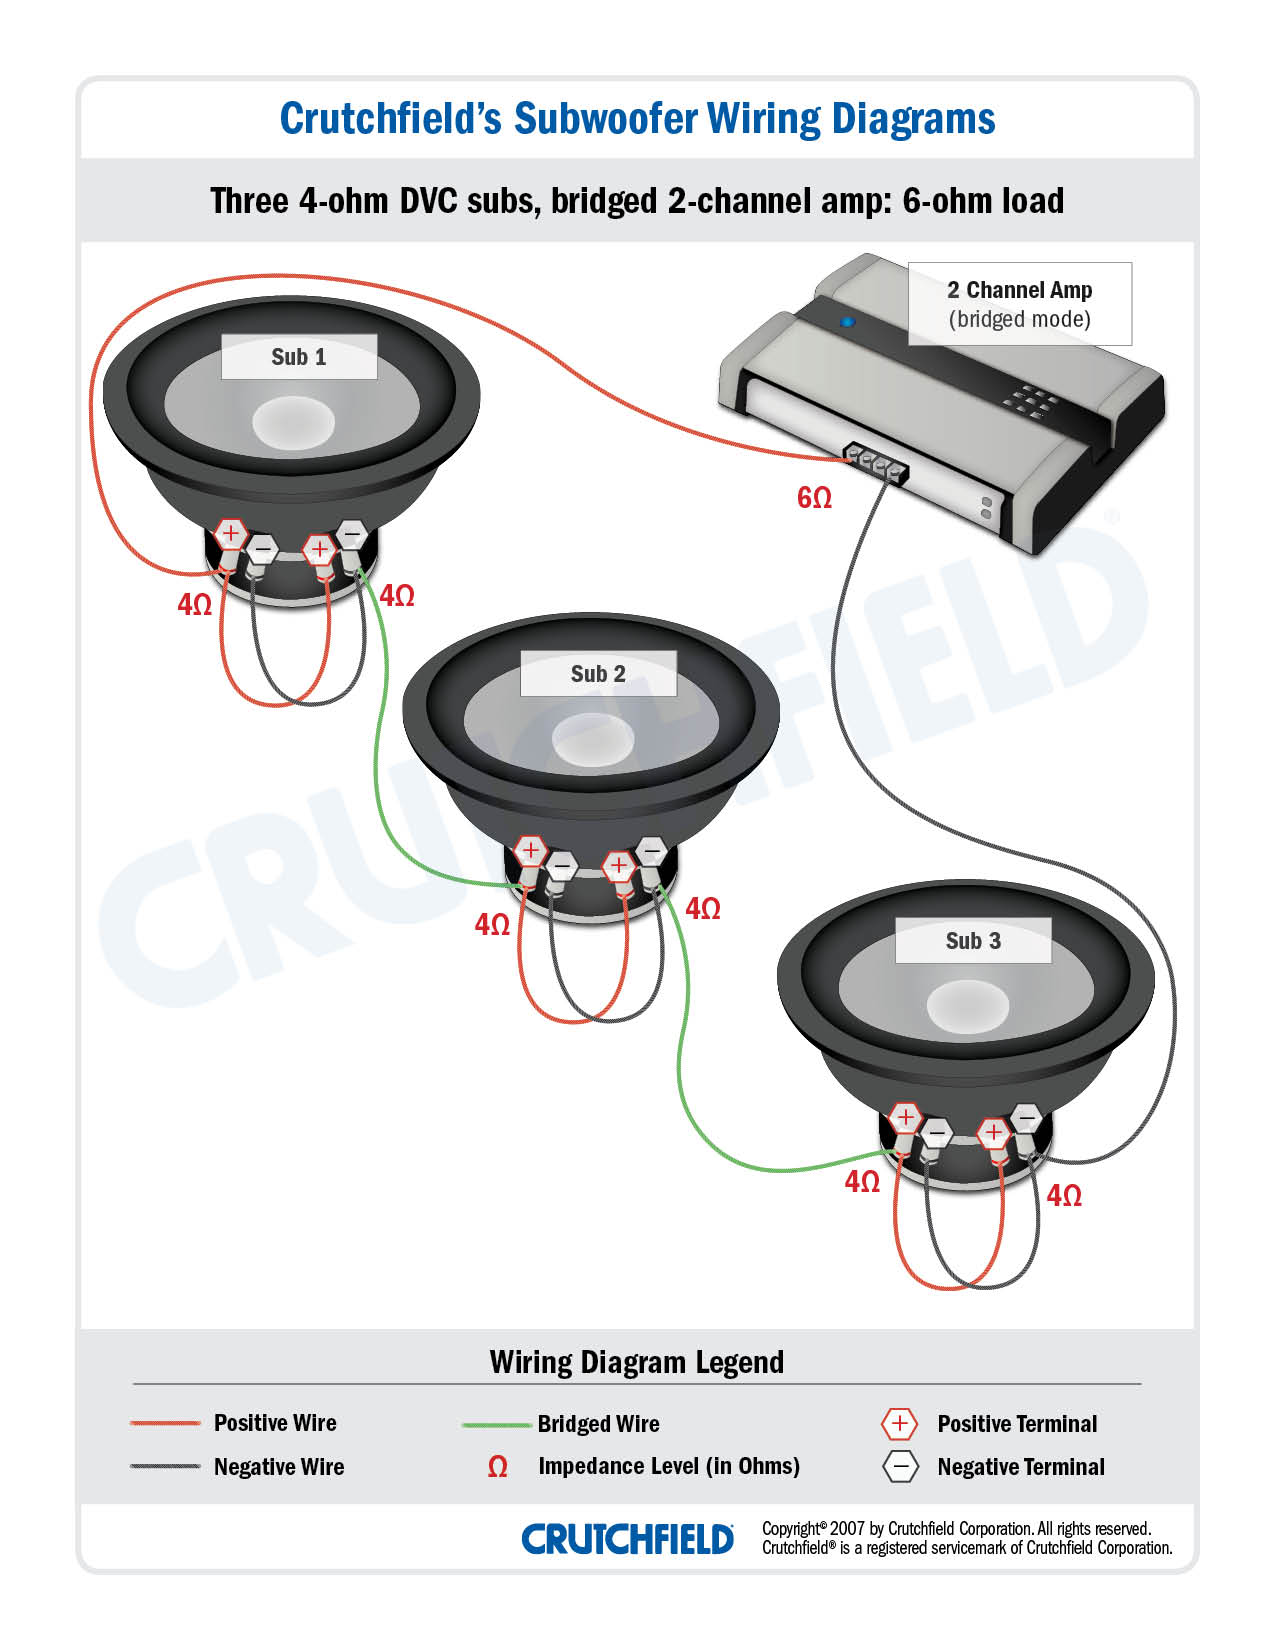 Subwoofer Wiring Diagrams — How to Wire Your SubsCrutchfield